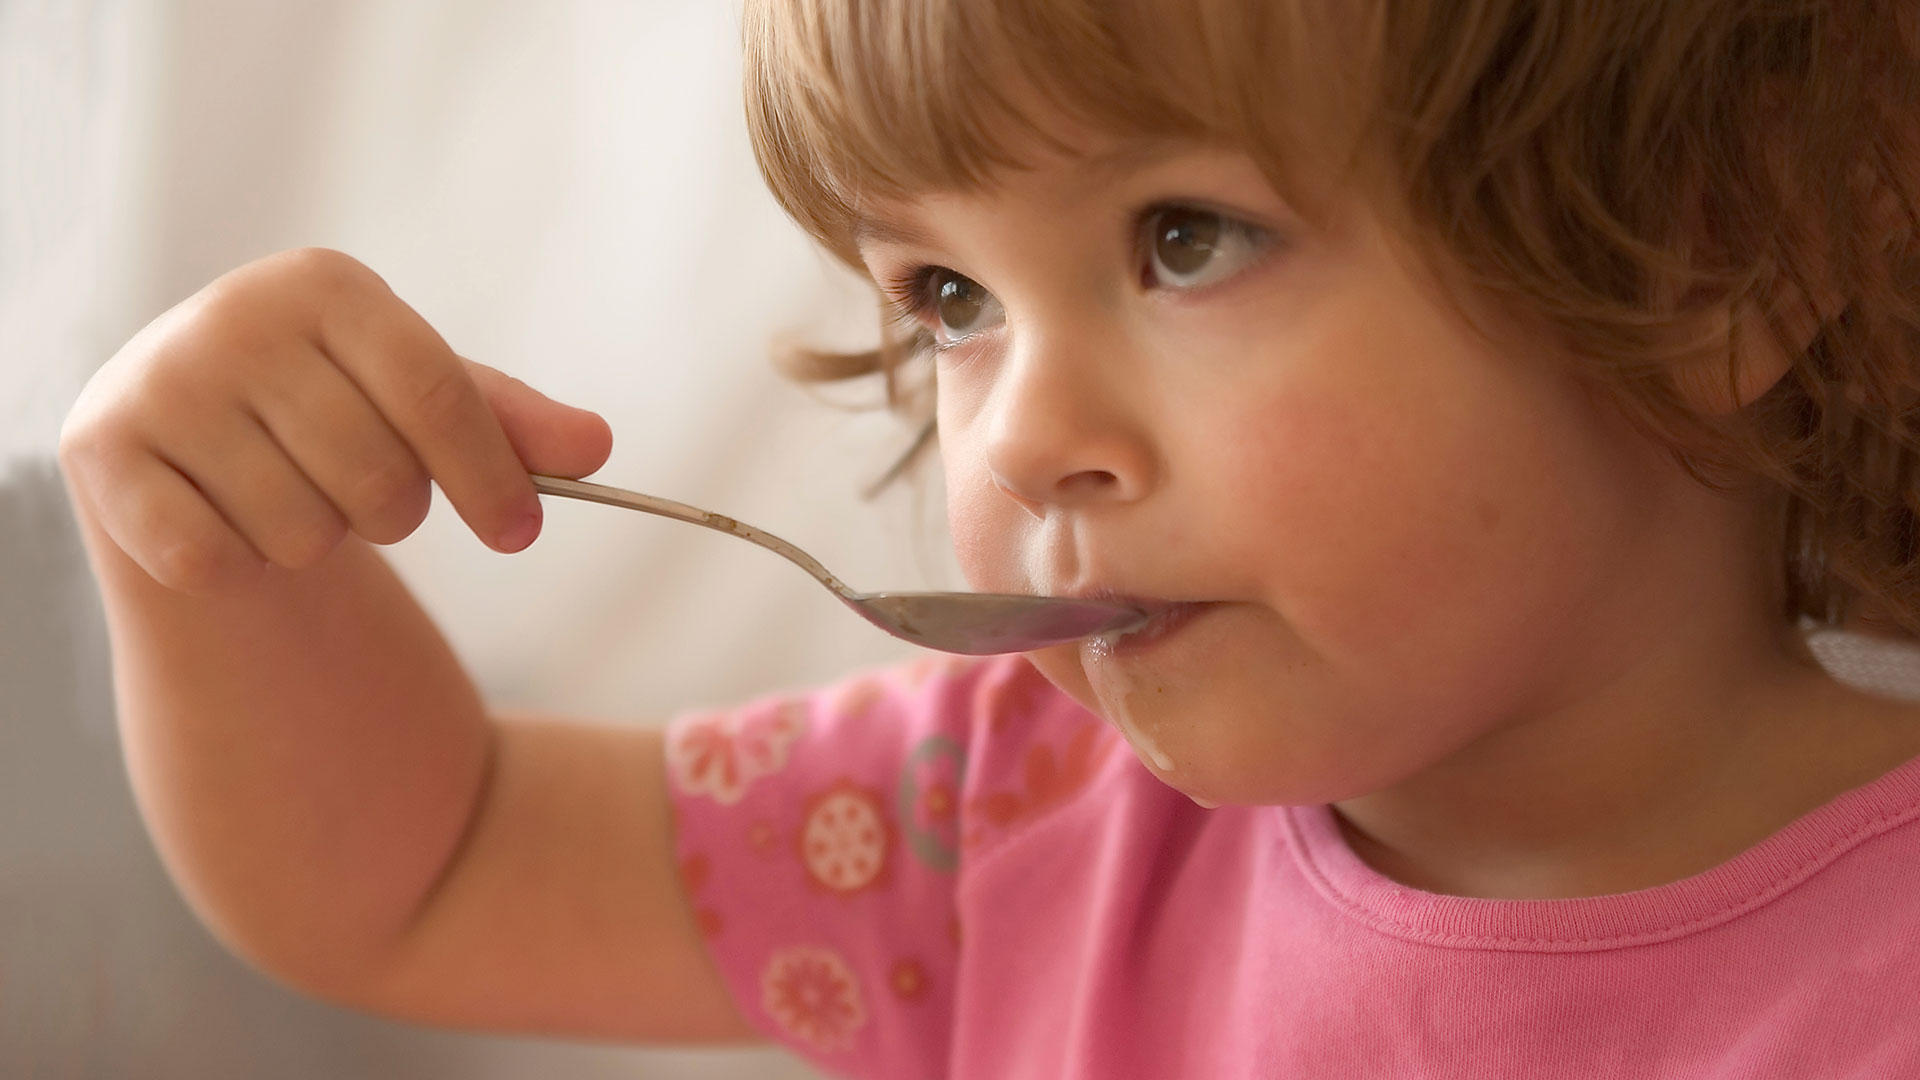 Child eating cereal from a spoon